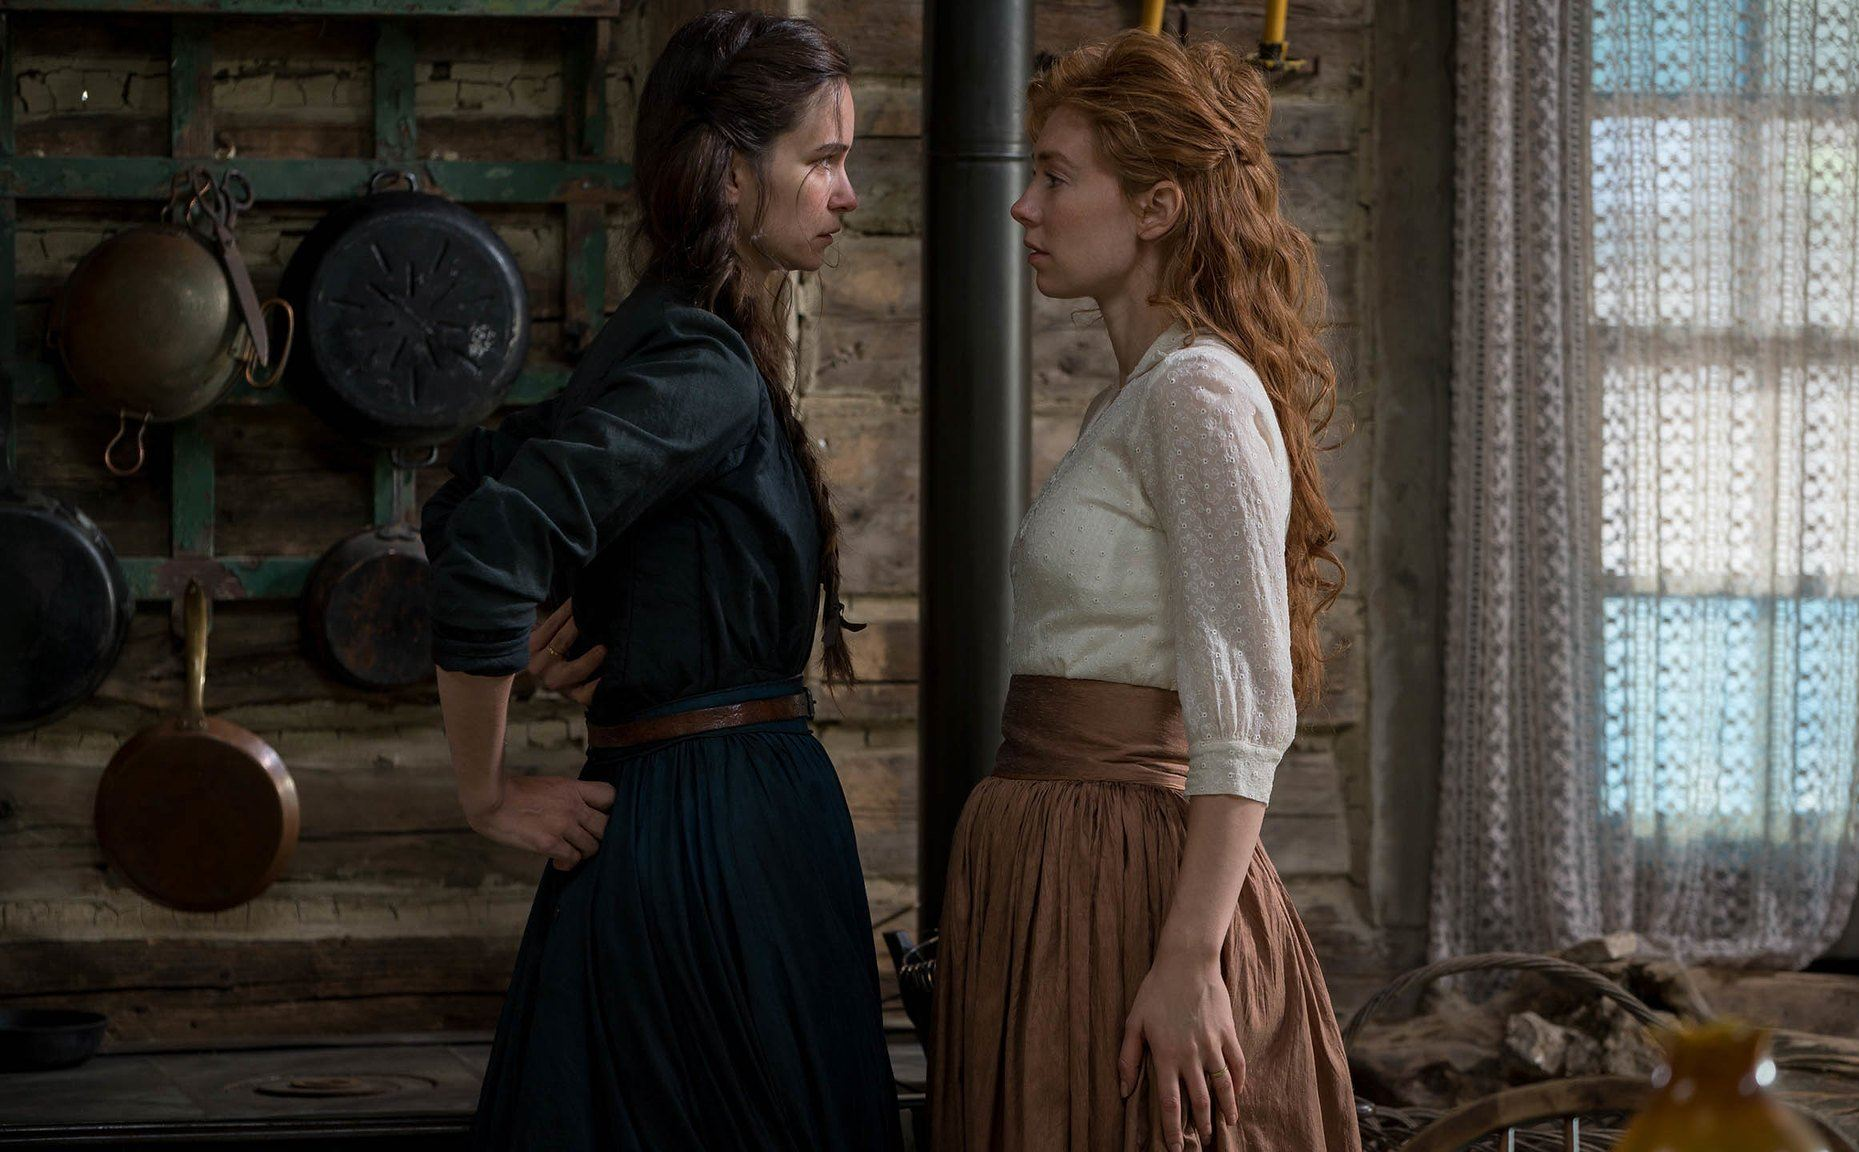 Tallie confronting Abigail inside their cabin. Both have serious looks on their faces.